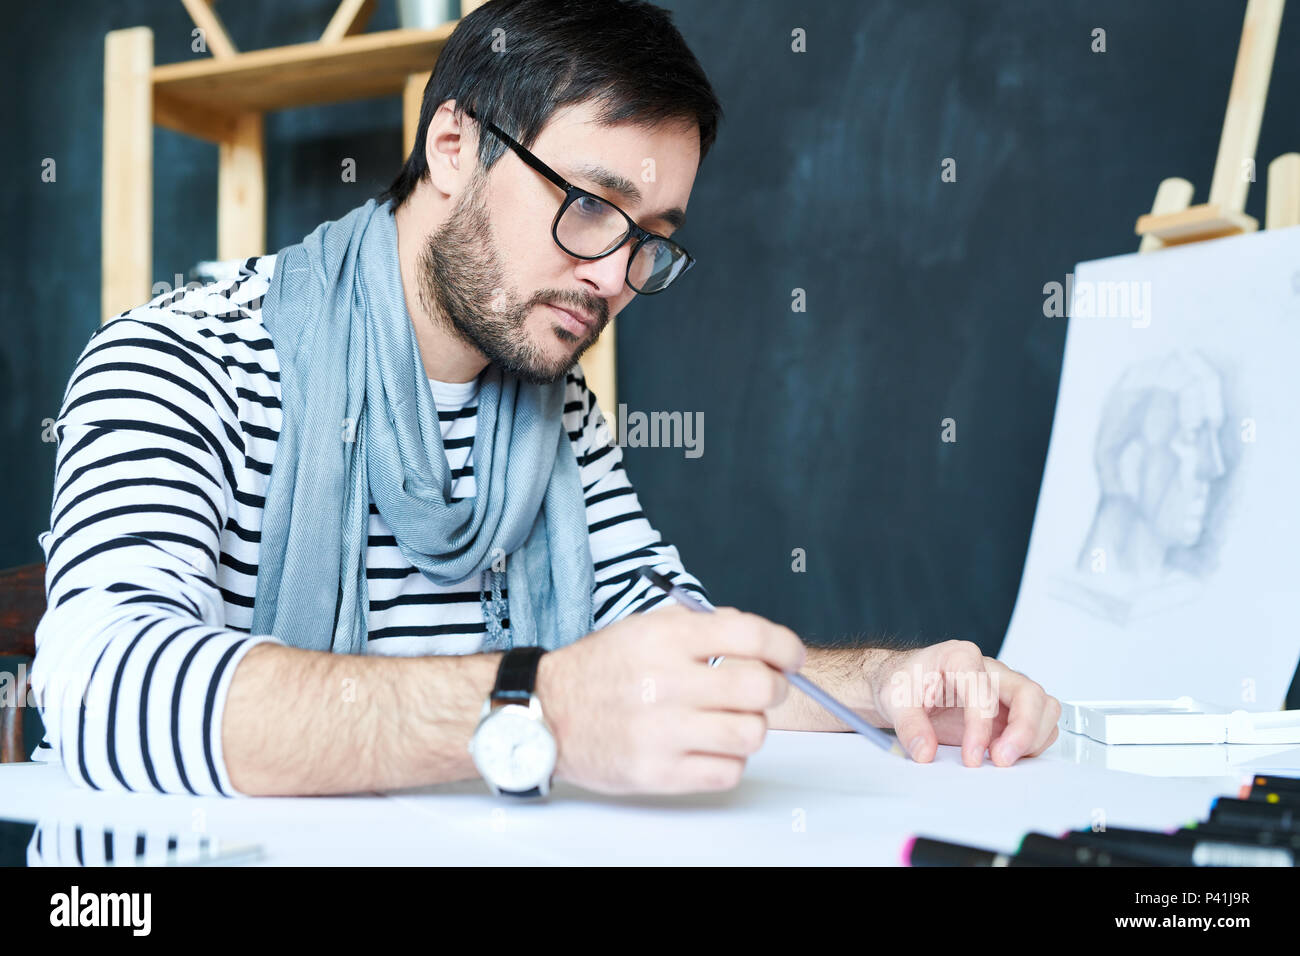 Stylish man painting with pencil - Stock Image